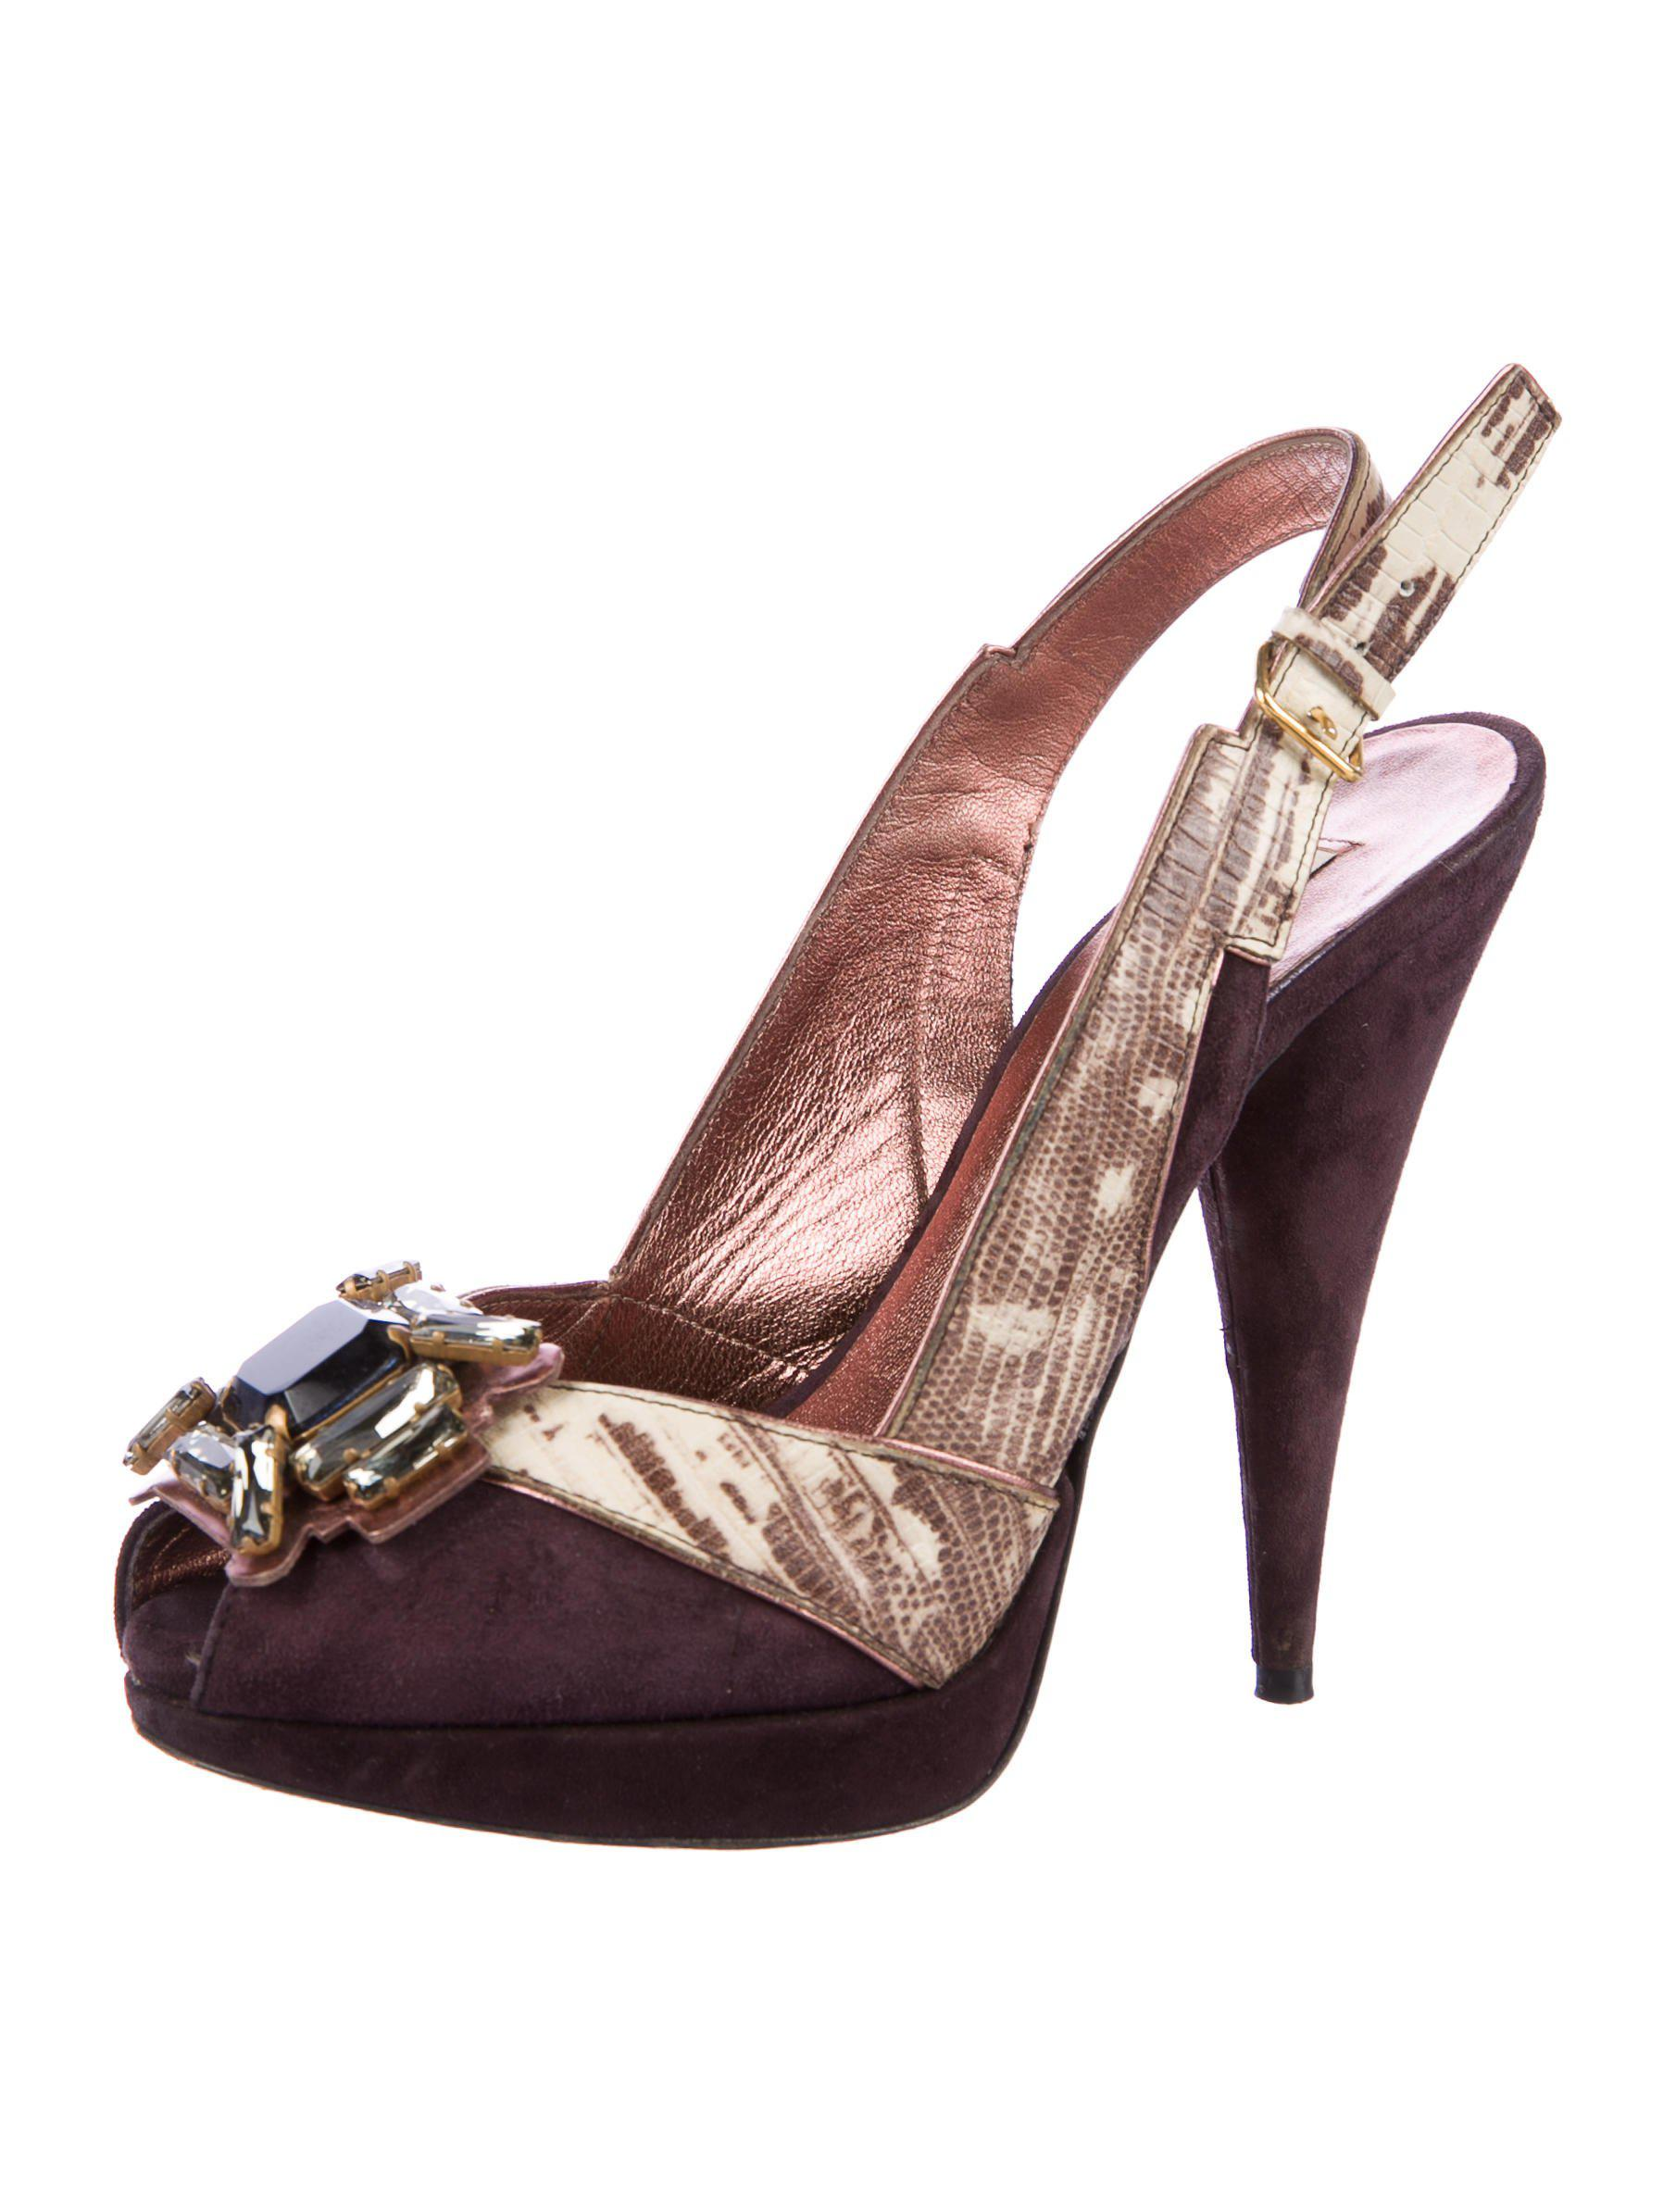 Miu Miu Embossed Embellished Pumps free shipping pay with paypal clearance tumblr the cheapest for sale w3rdlaOq7